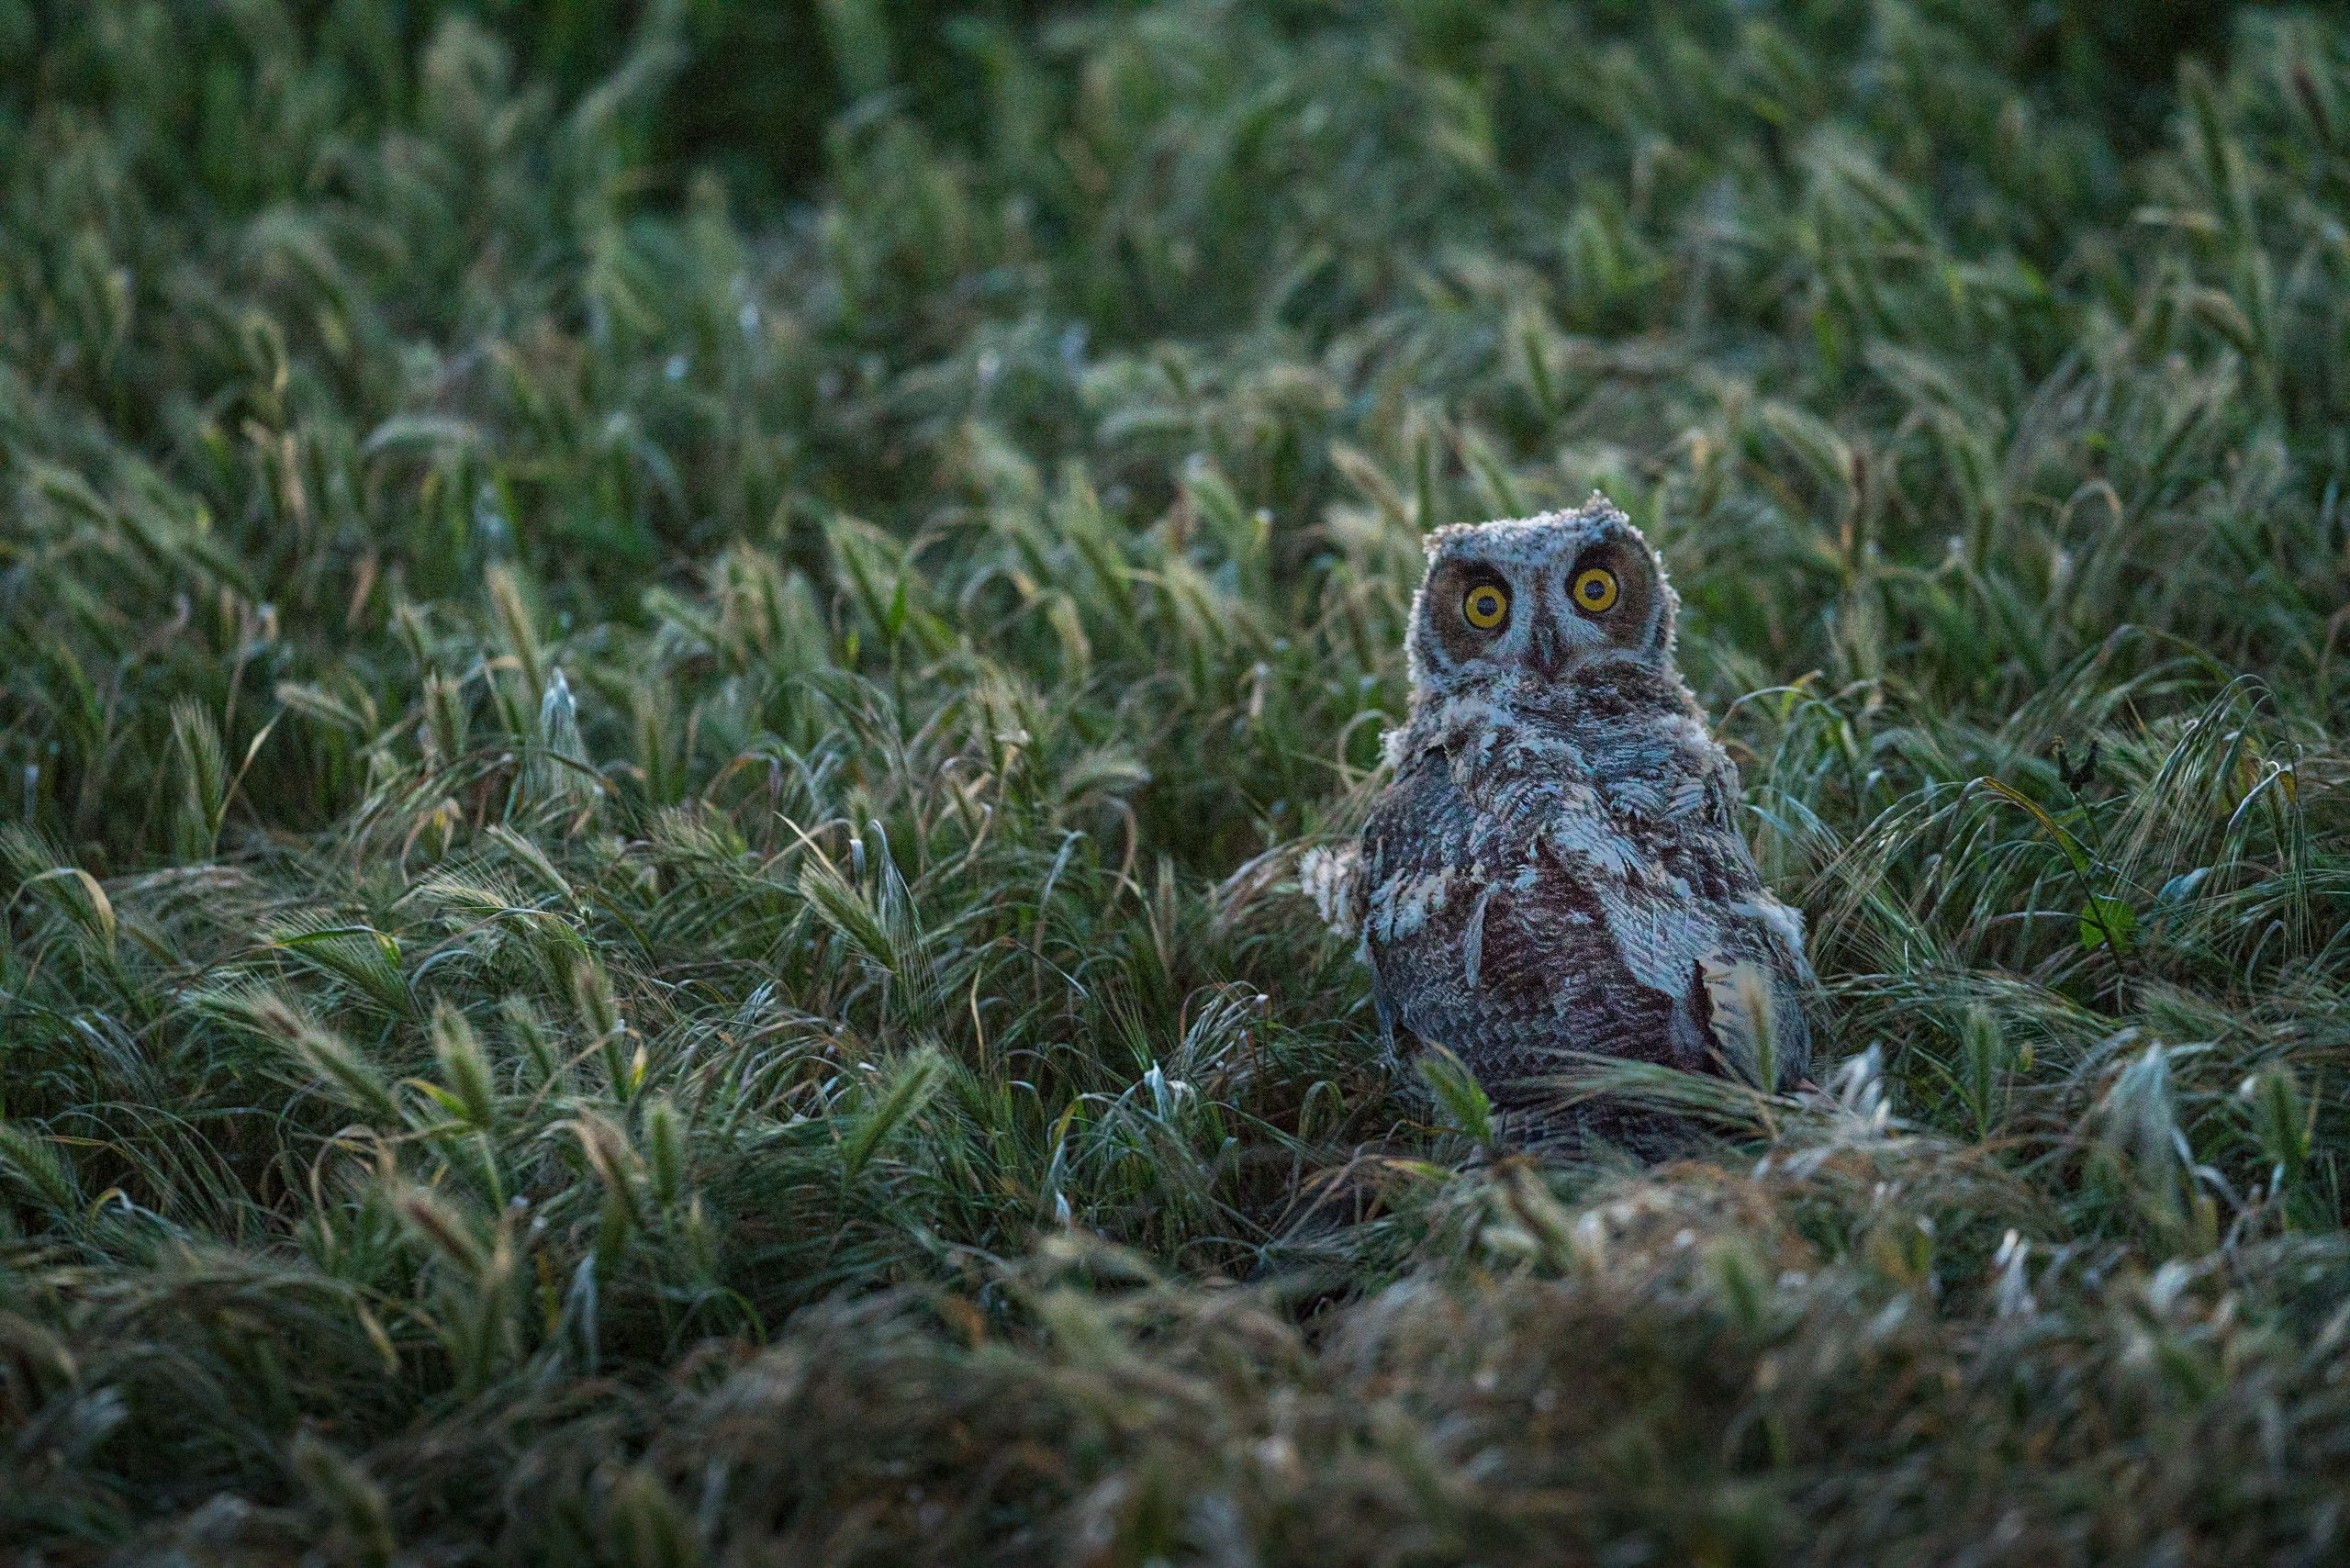 An owl sits in the grass looking directly at the camera.